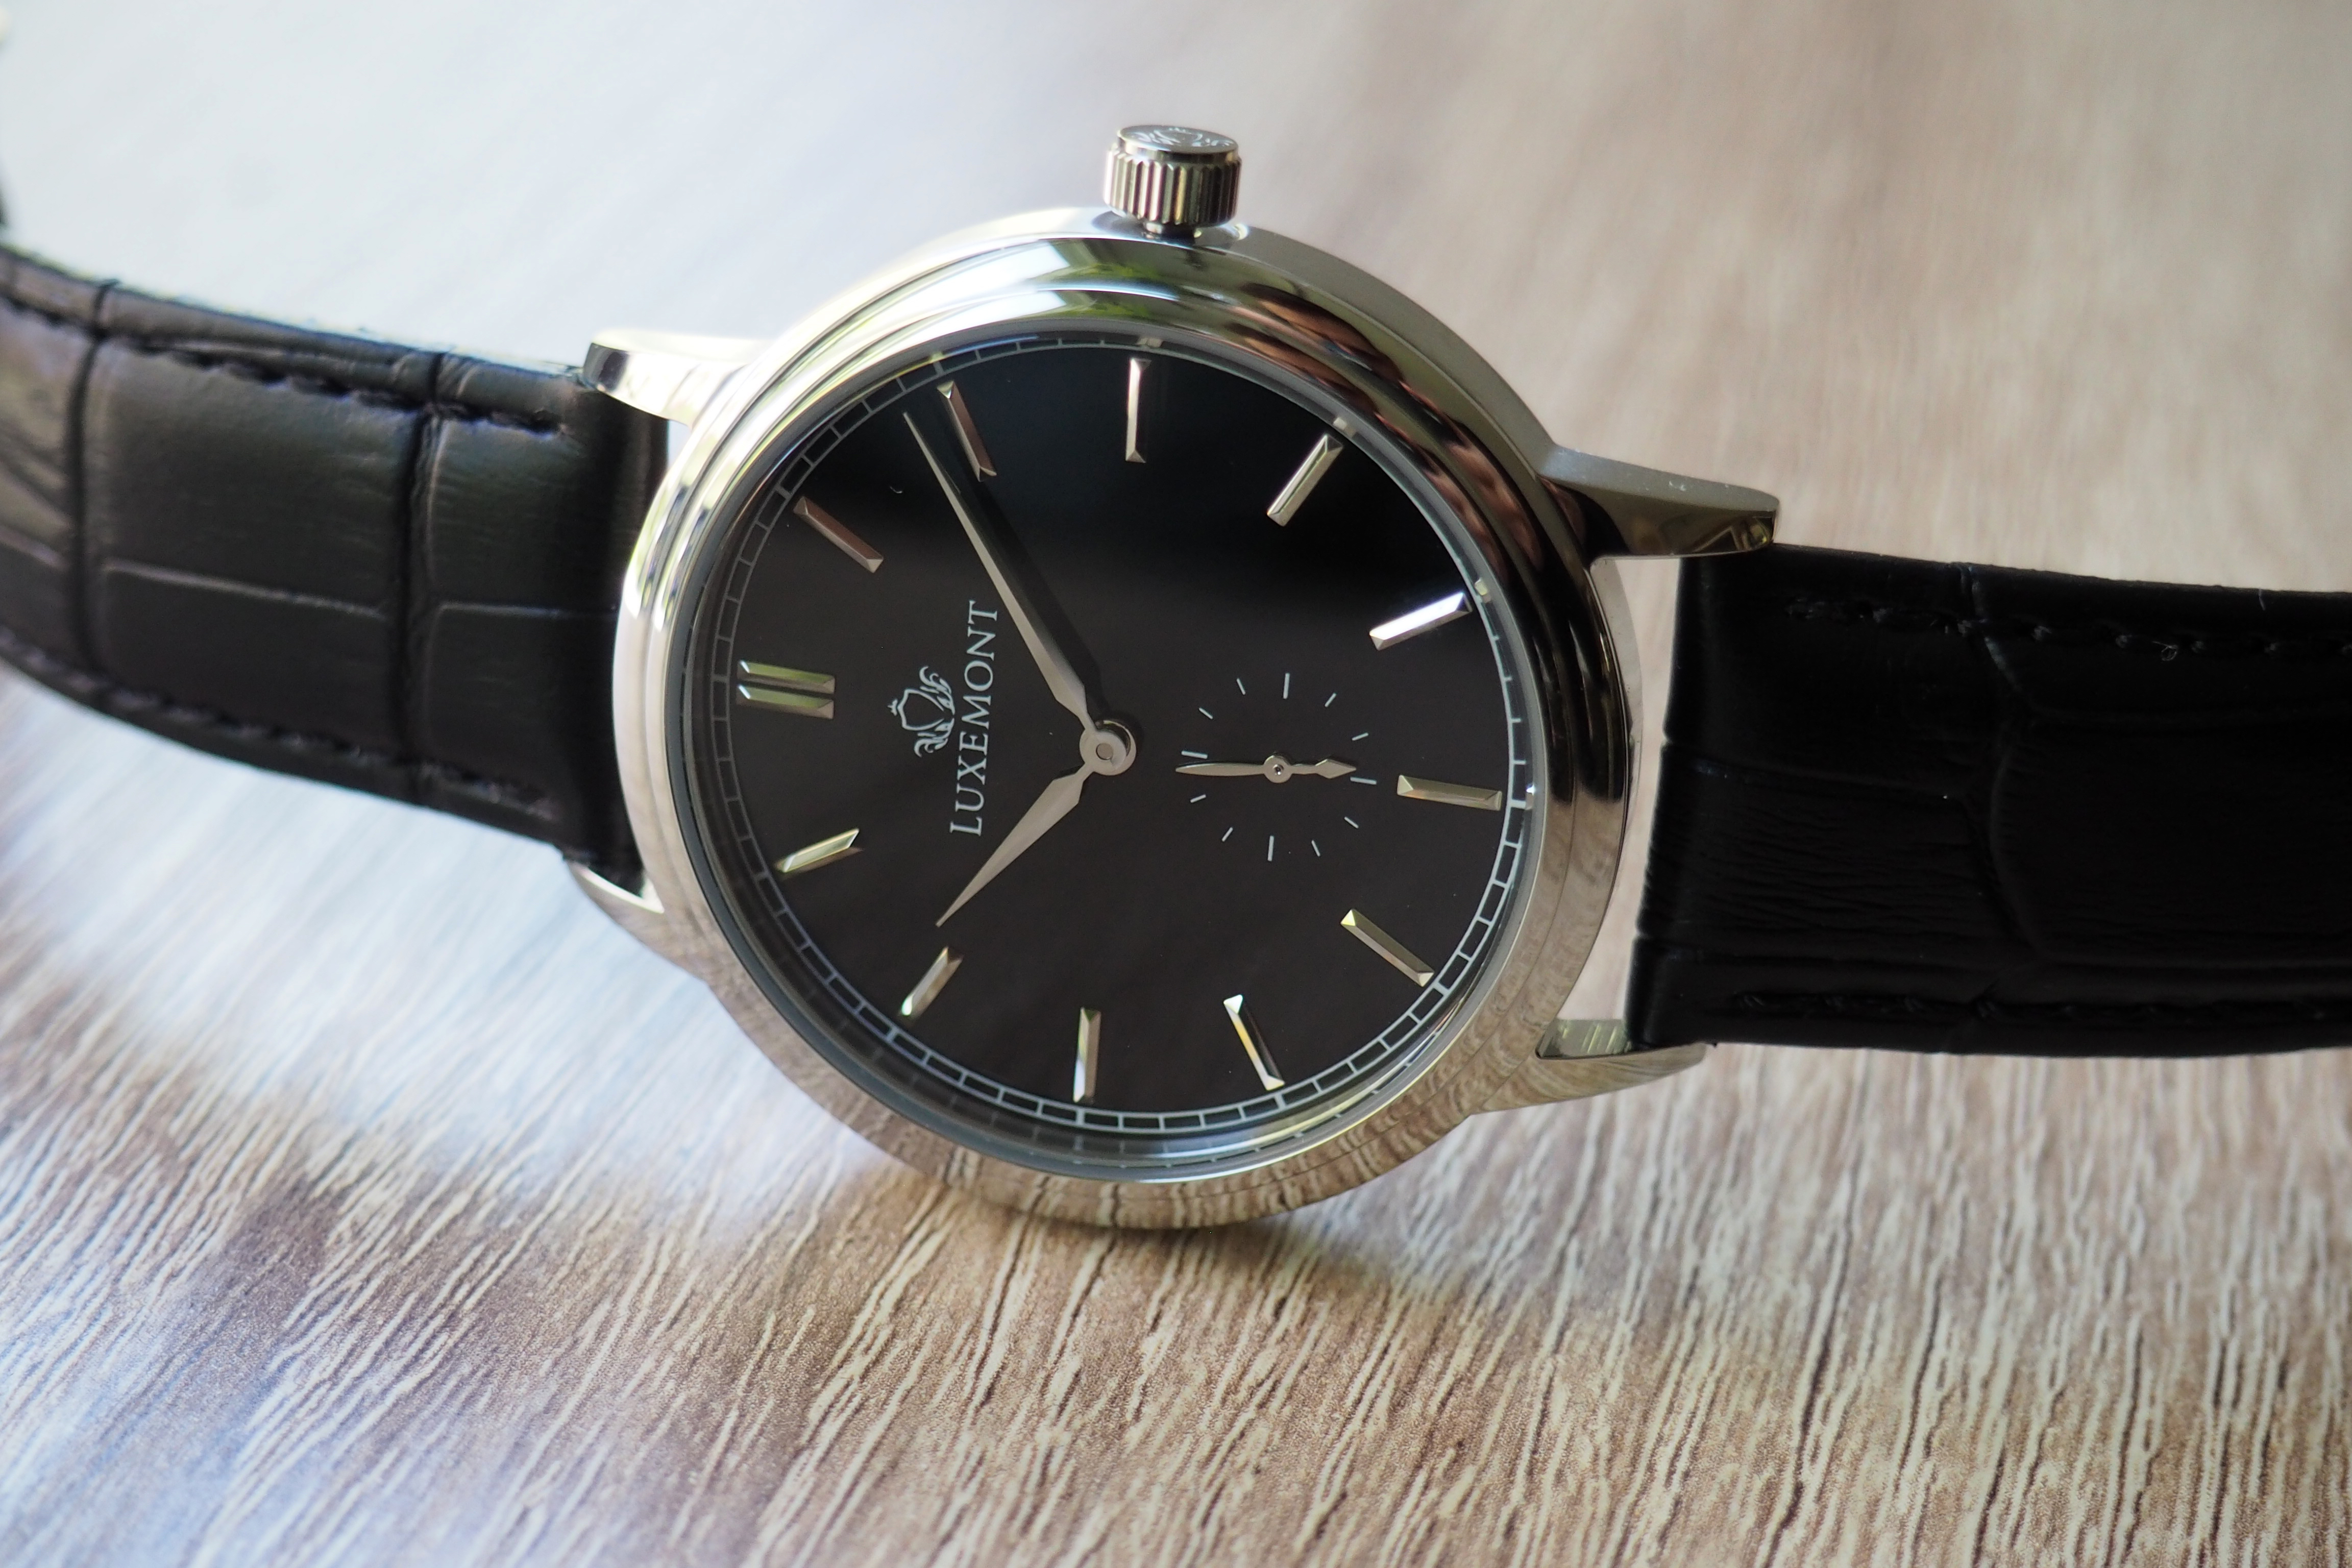 Maestro dial on side